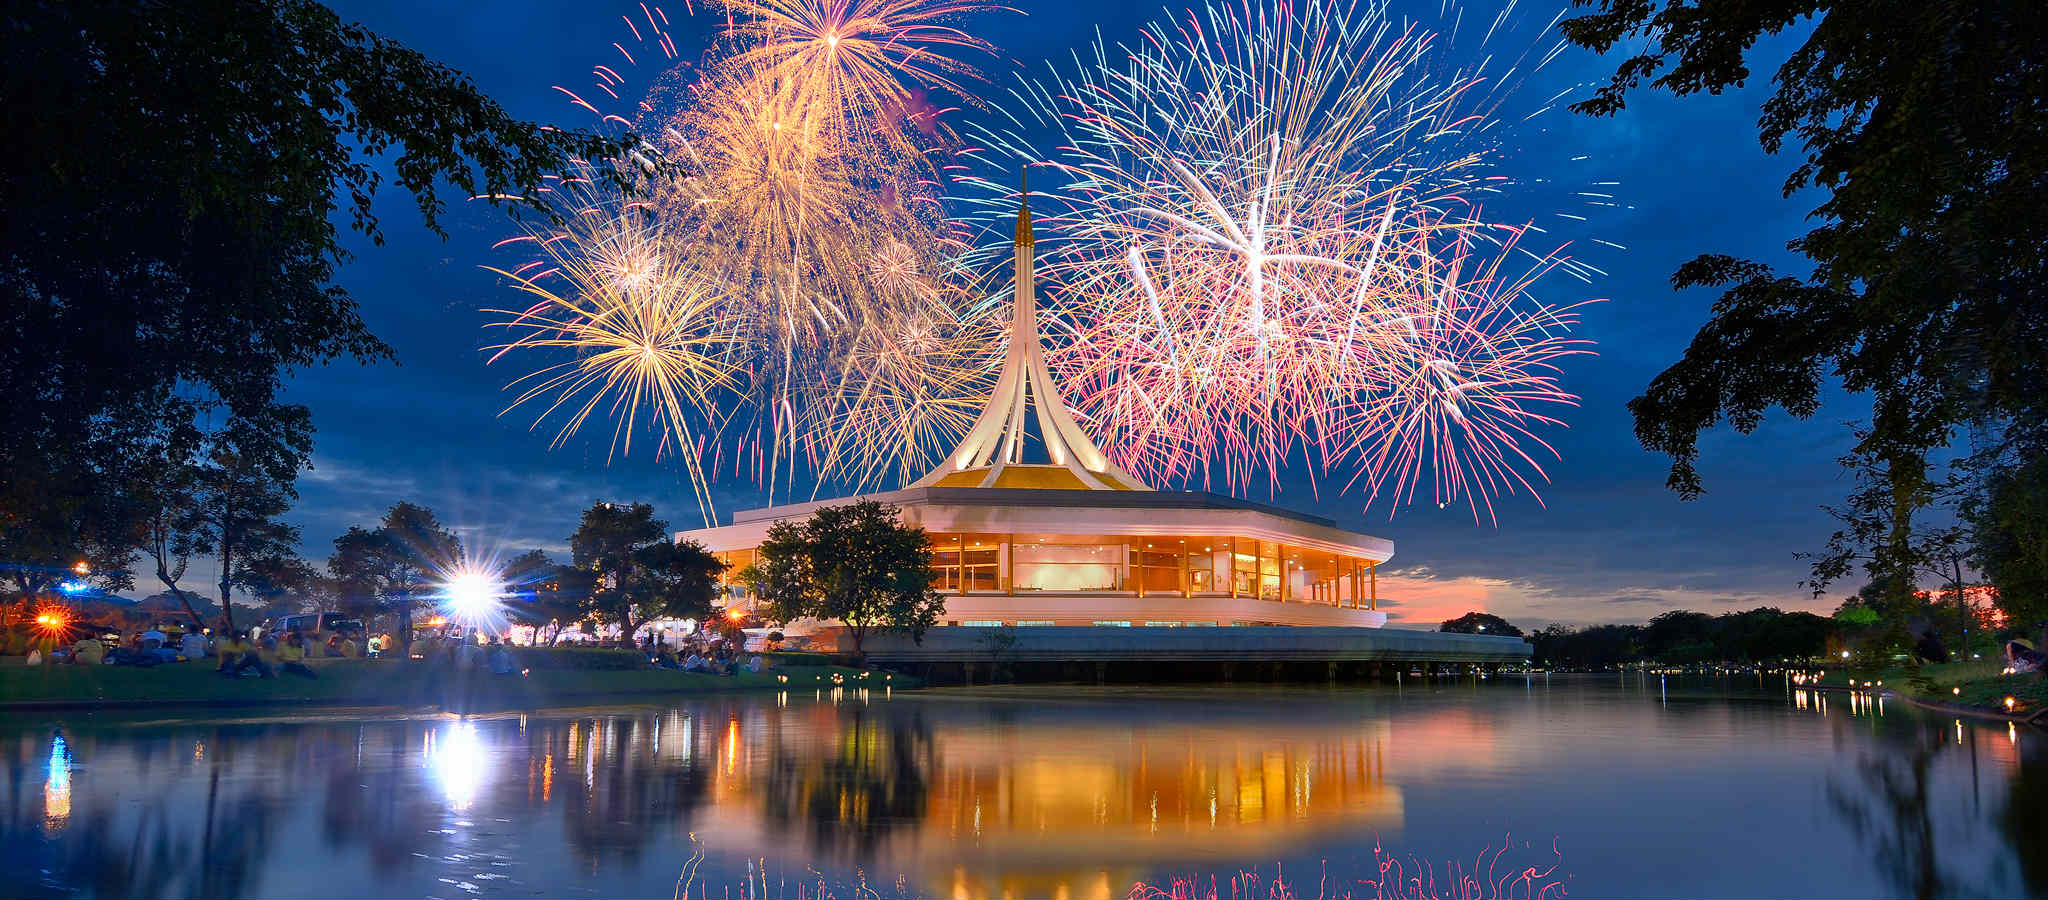 Firework show and the golden pavilion that looks like an UFO in King Rama IX Park